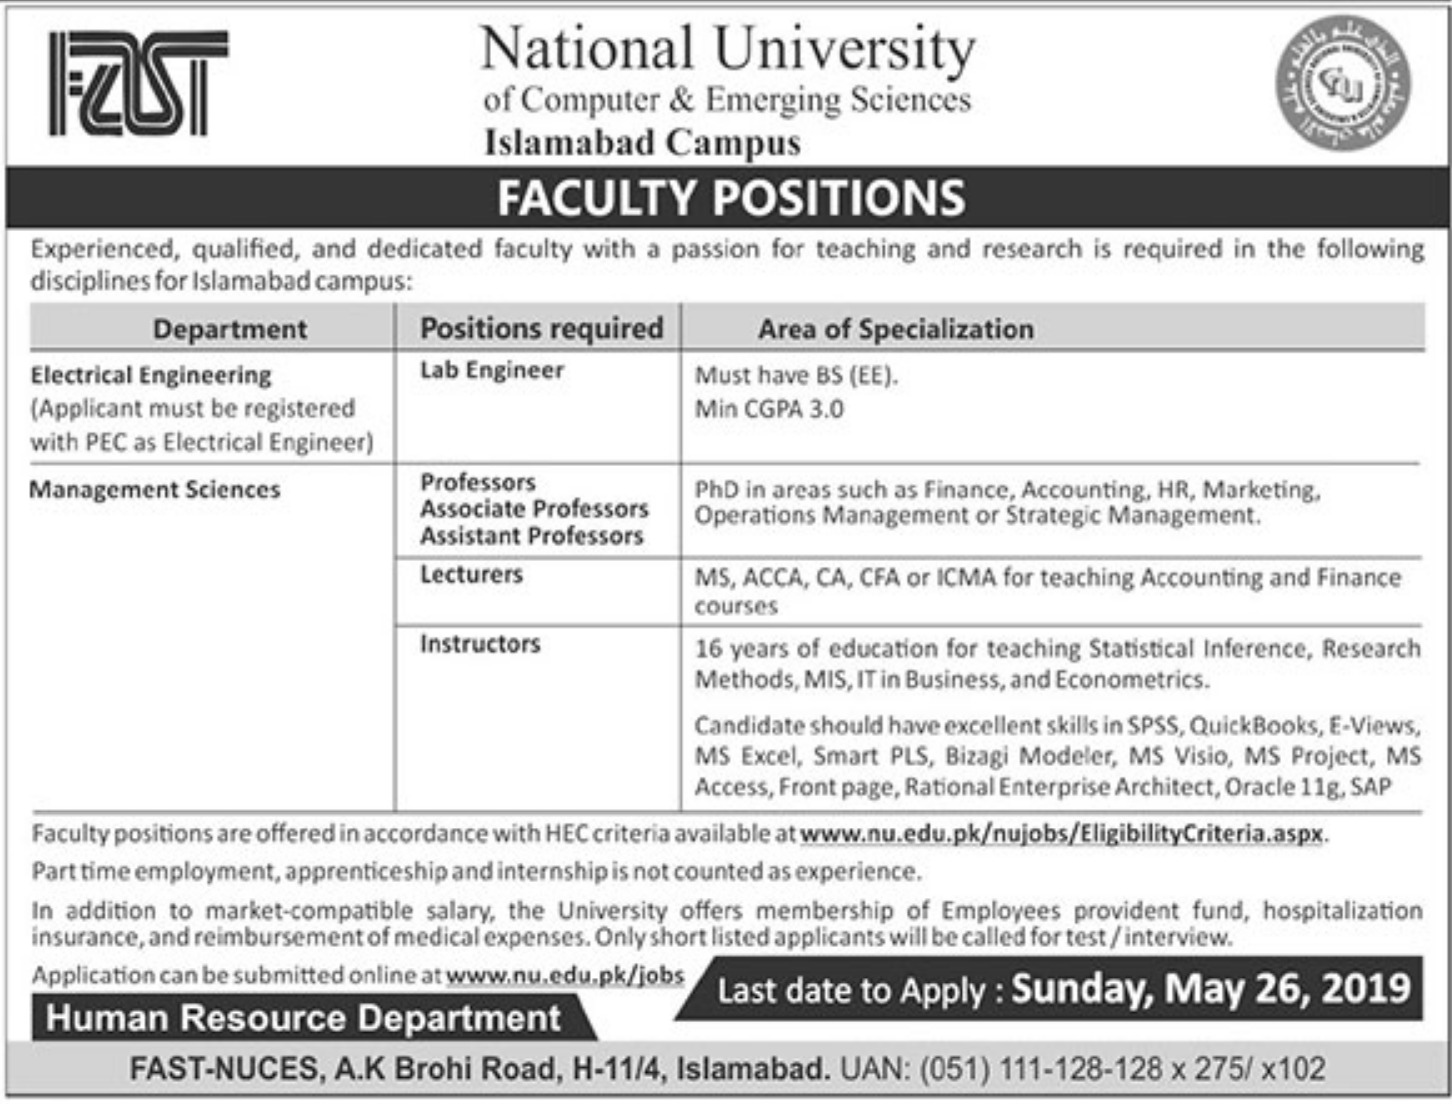 National University of Computer & Emerging Sciences Jobs 2019 Islamabad Campus